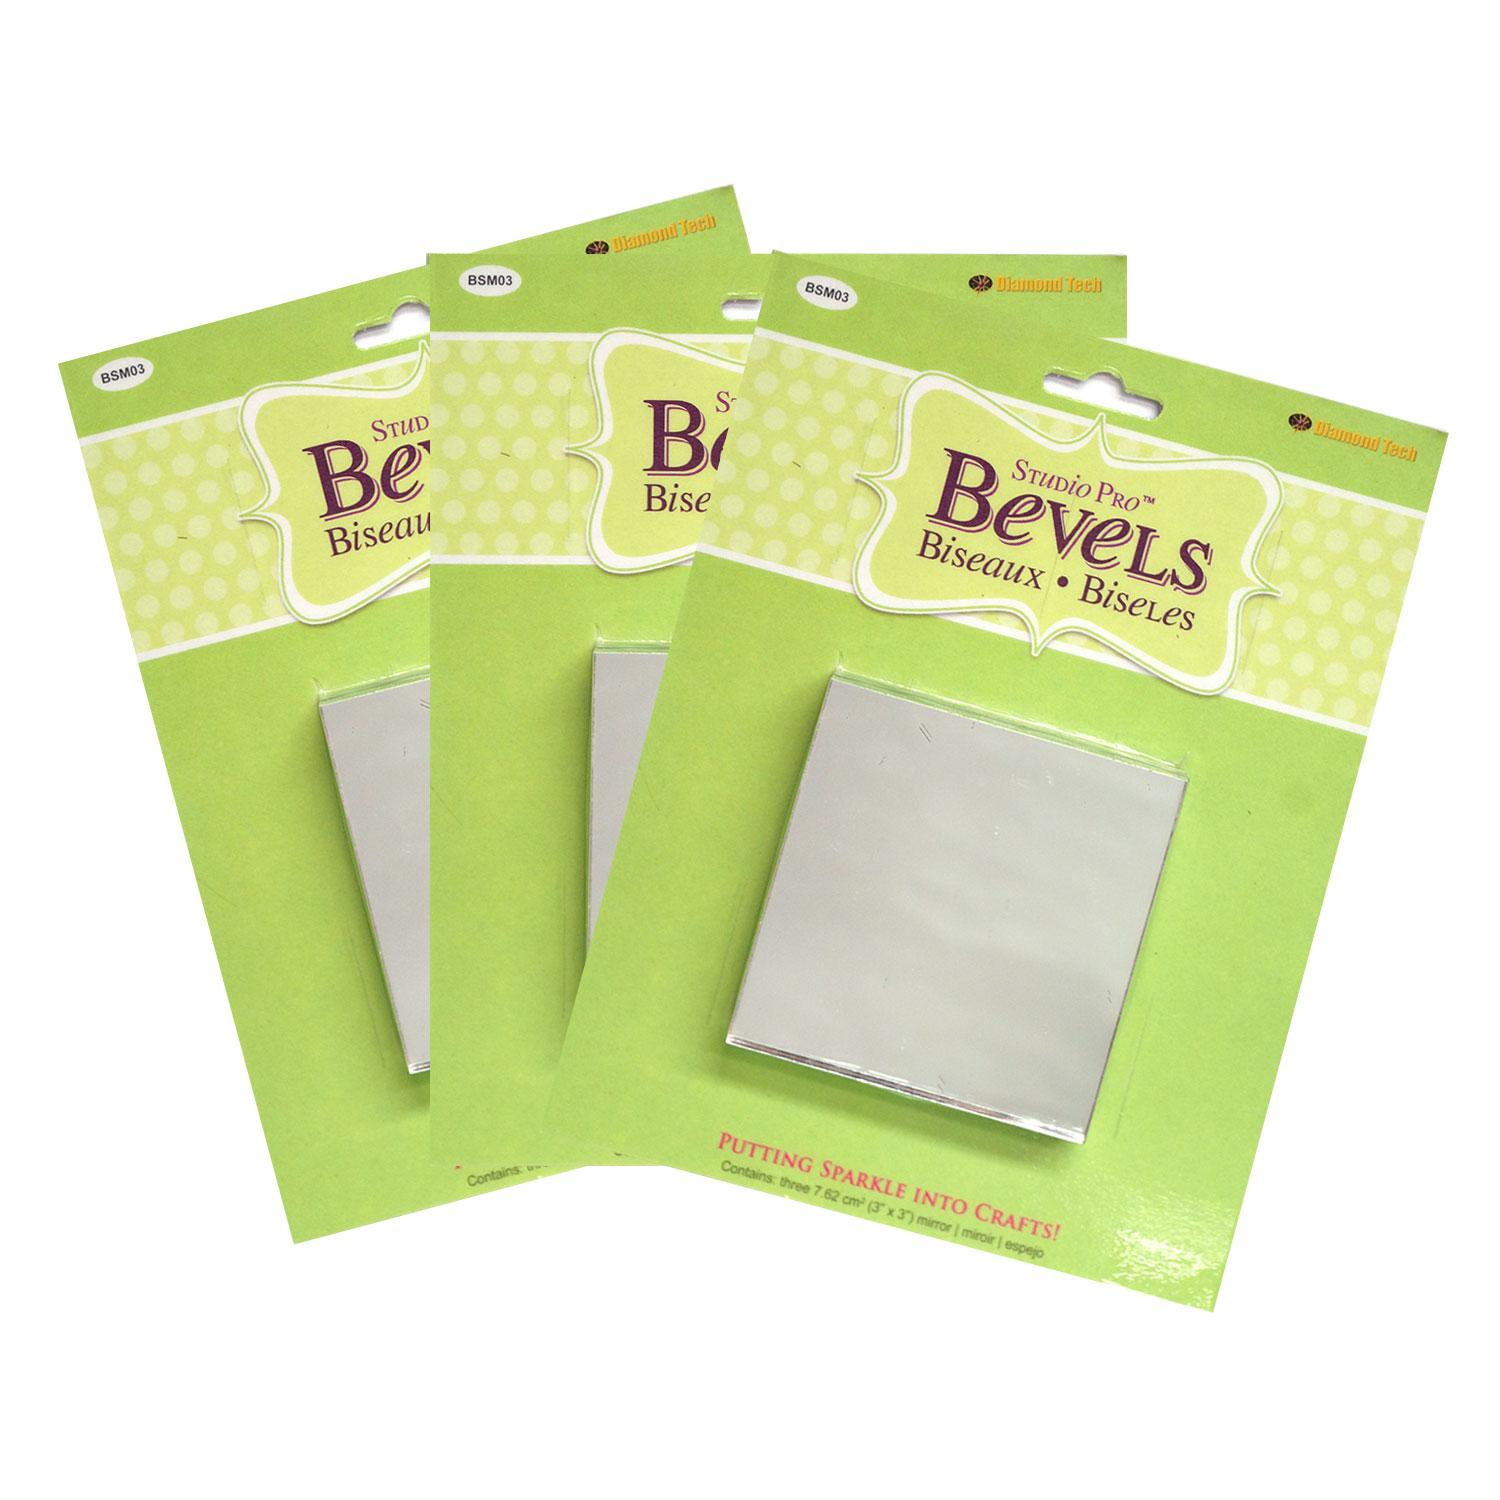 3 Square Mirror - 9 Pack